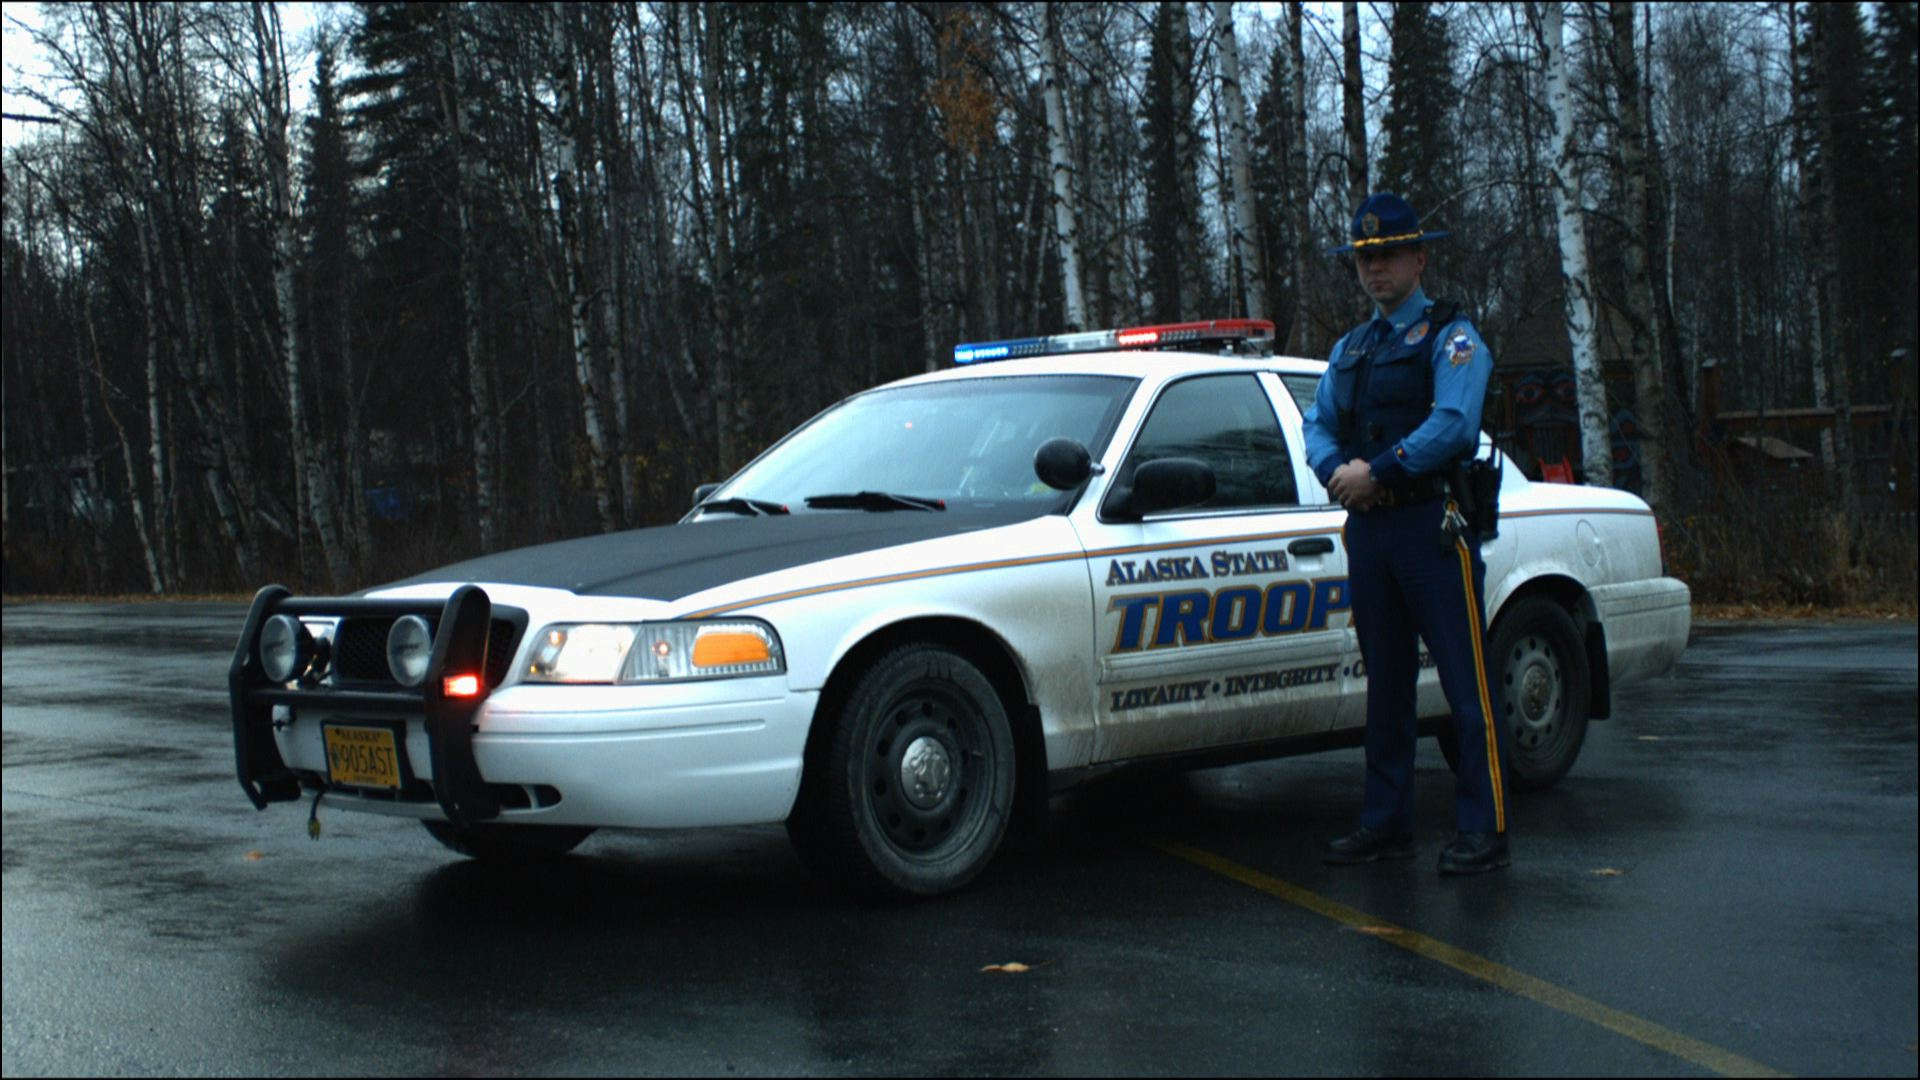 Alaska State Troopers Wallpaper